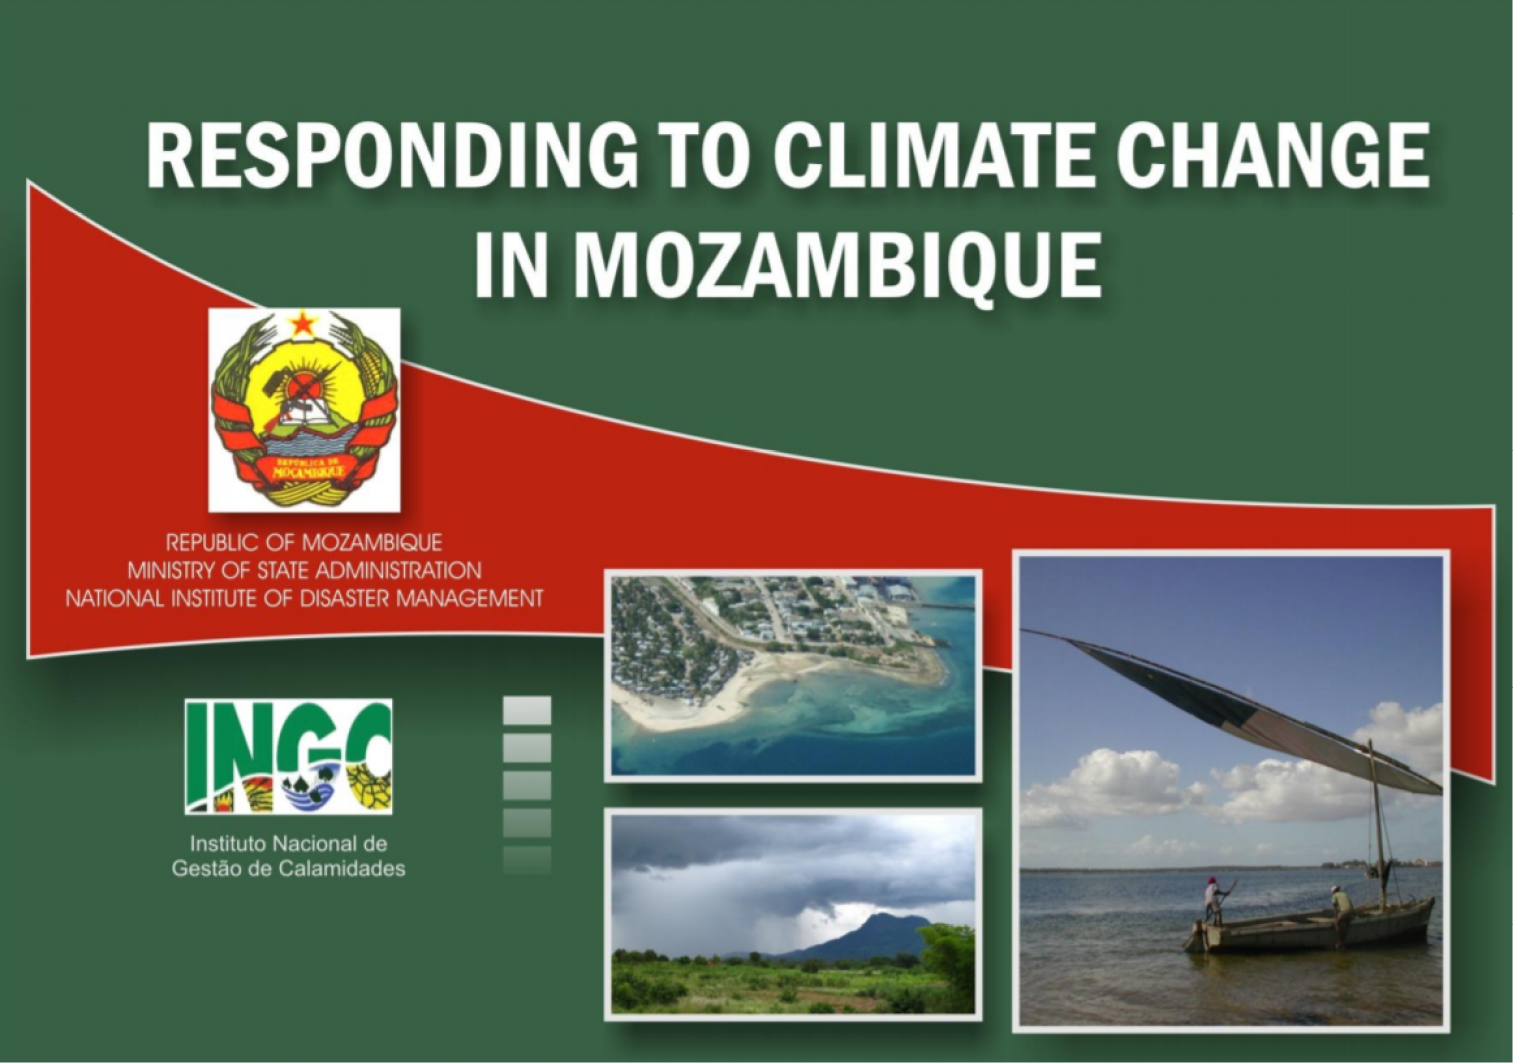 Climate Change Report in Mozambique